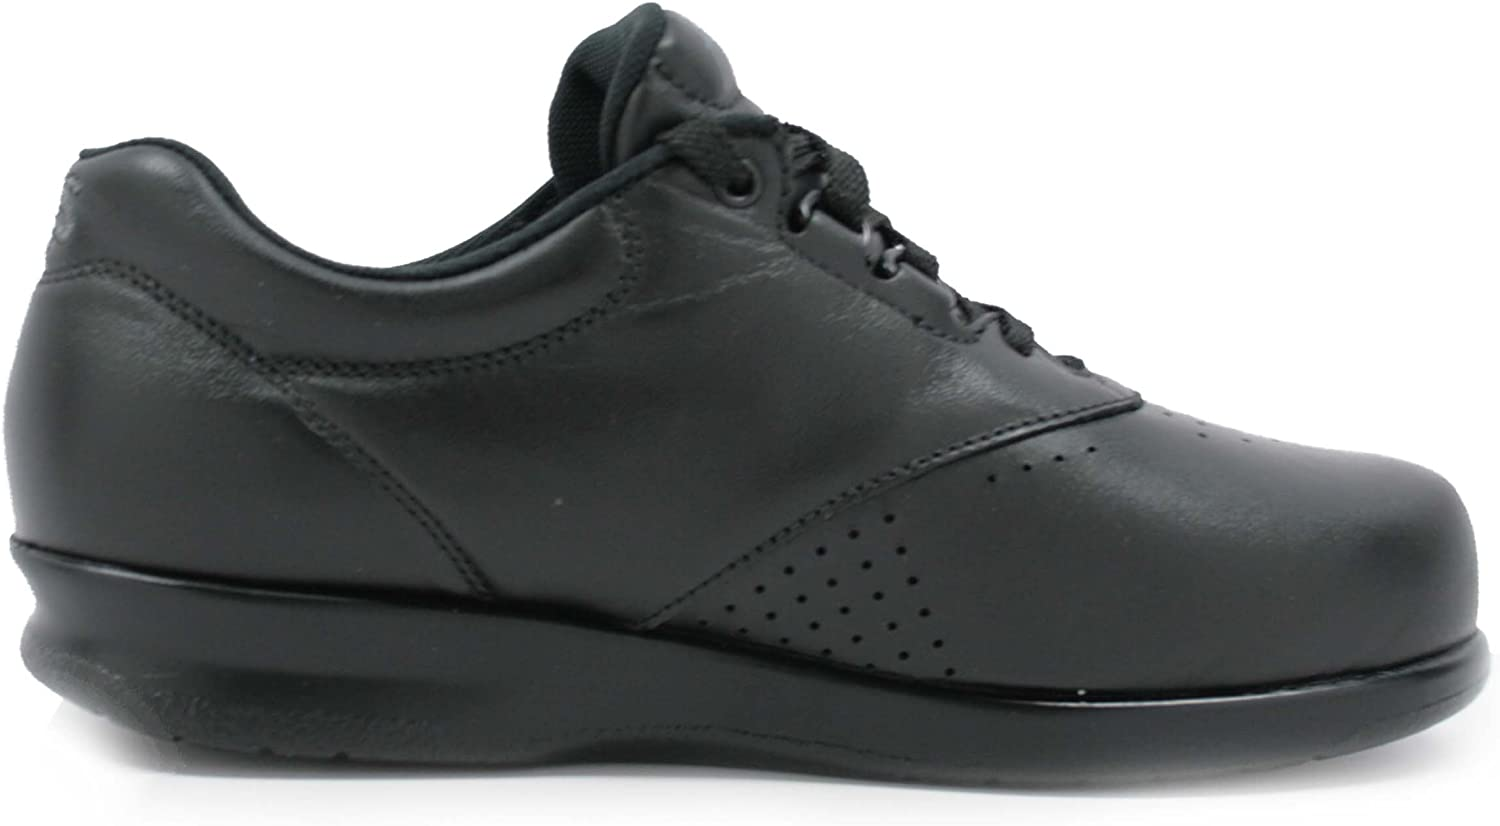 SAS Shoes Women/'s Free Time Black 7.5 Medium Width FREE SHIPPING New In Box Save